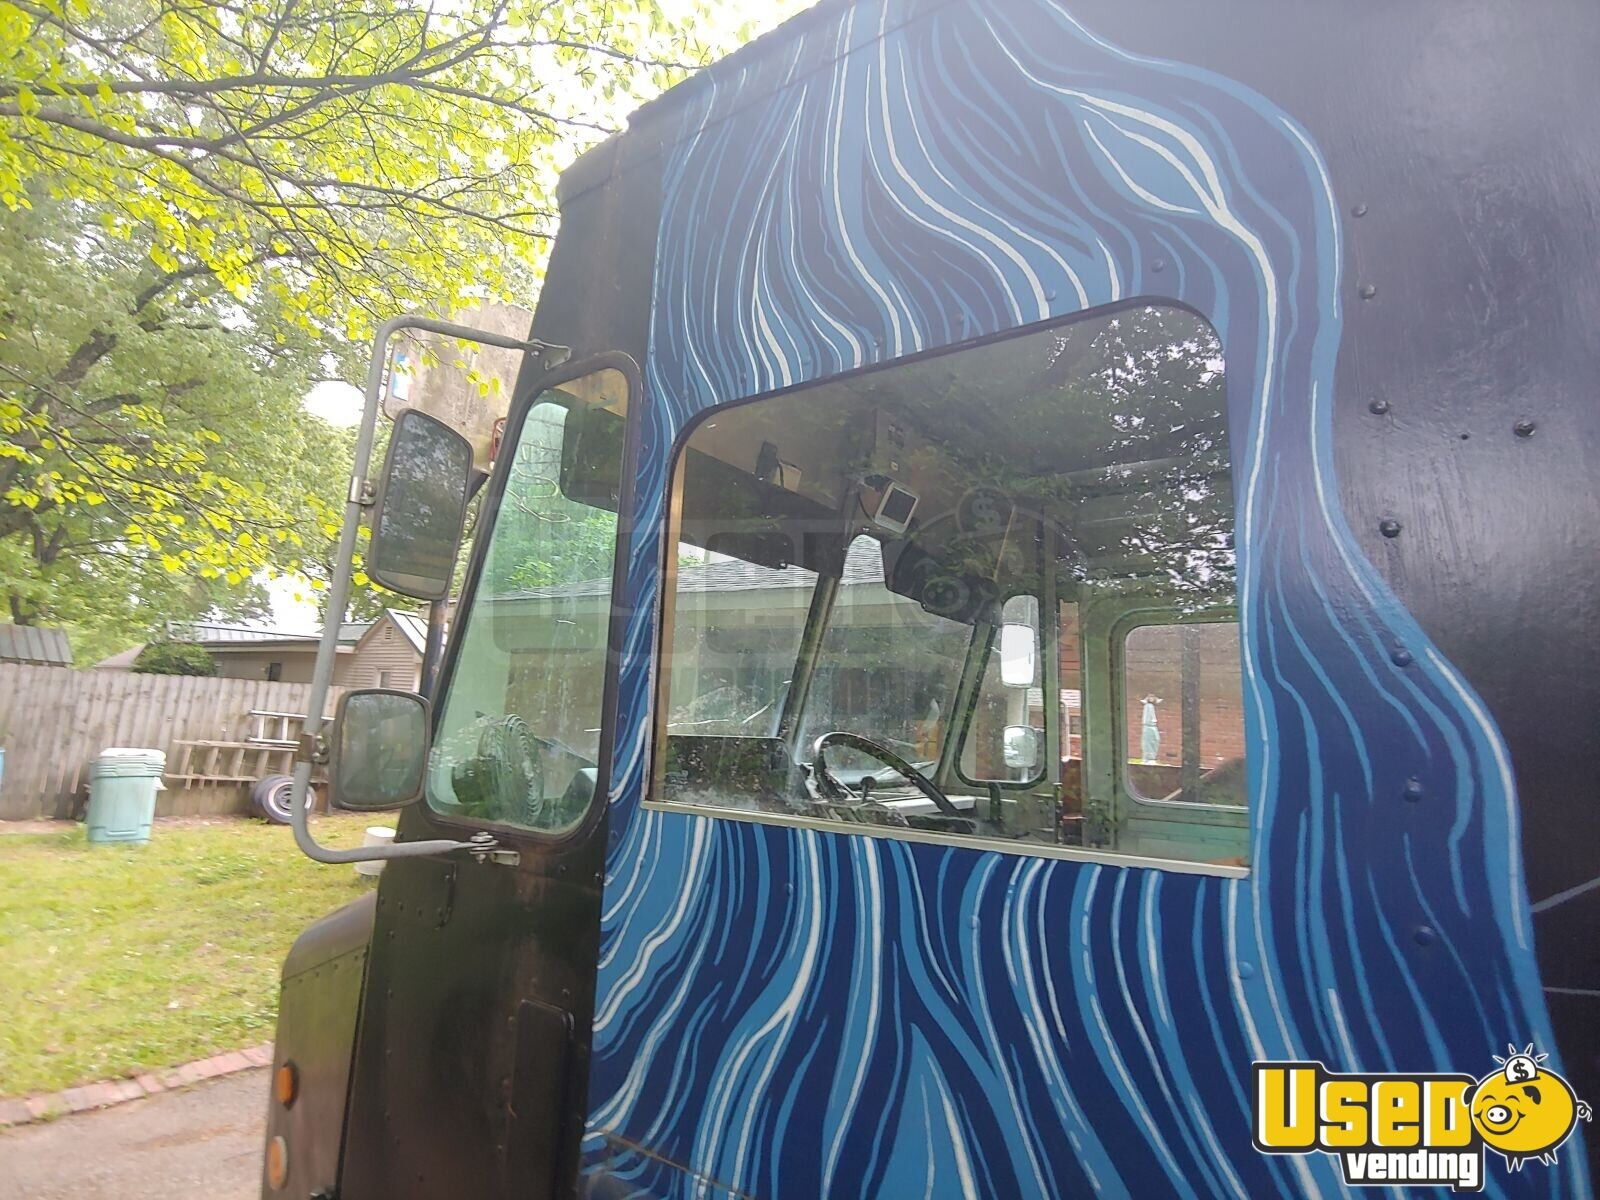 1996 Chevy P30 Food Truck Insulated Walls Tennessee Gas Engine for Sale - 5